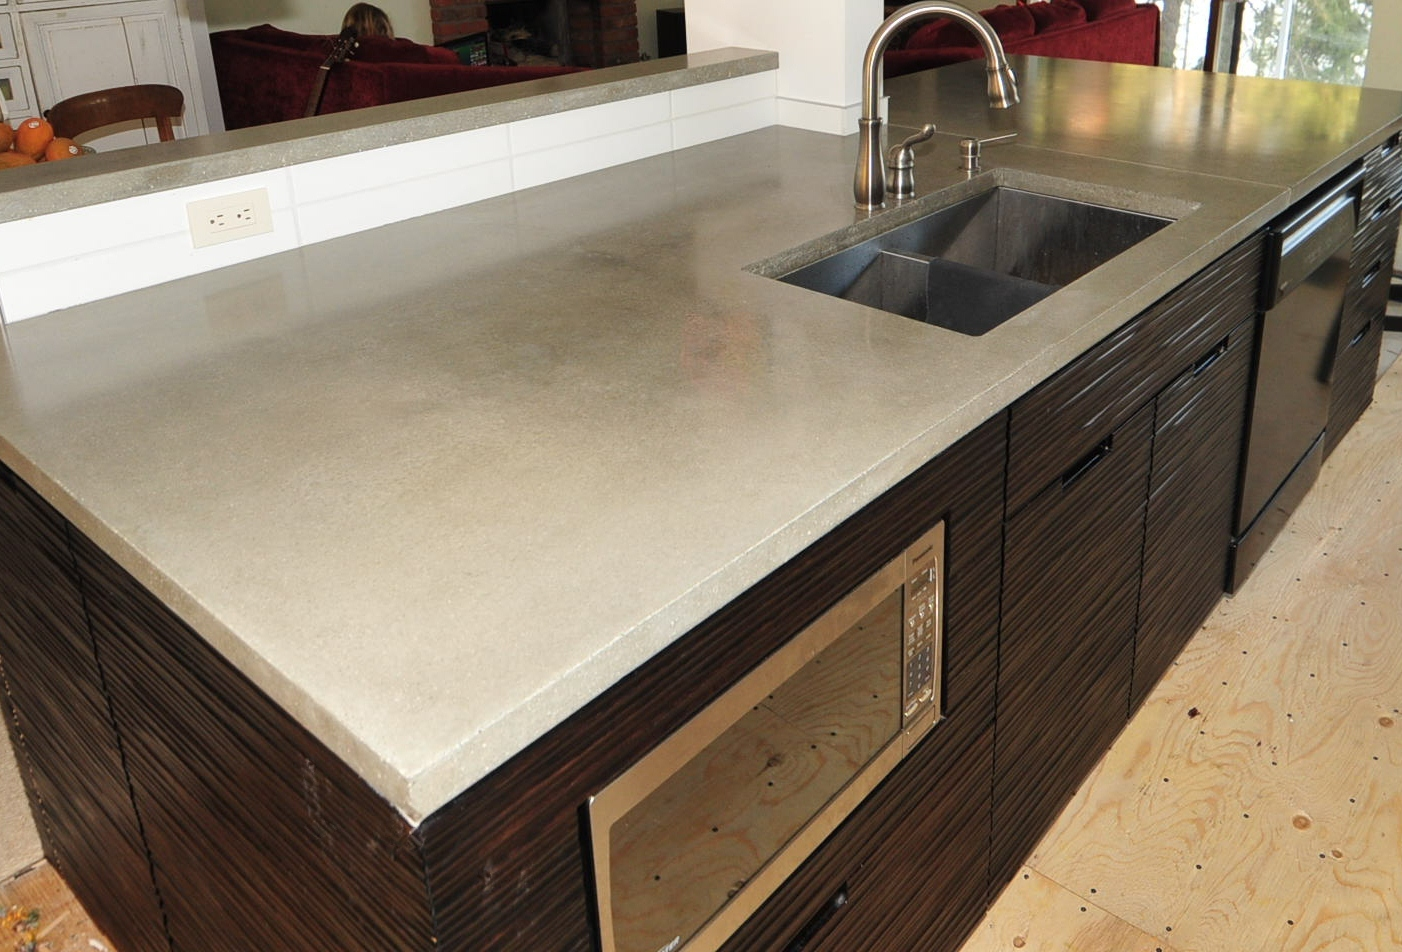 Concrete Kitchen Countertops Ikea Cabinet Doors Mode Ultra Chic And Modern